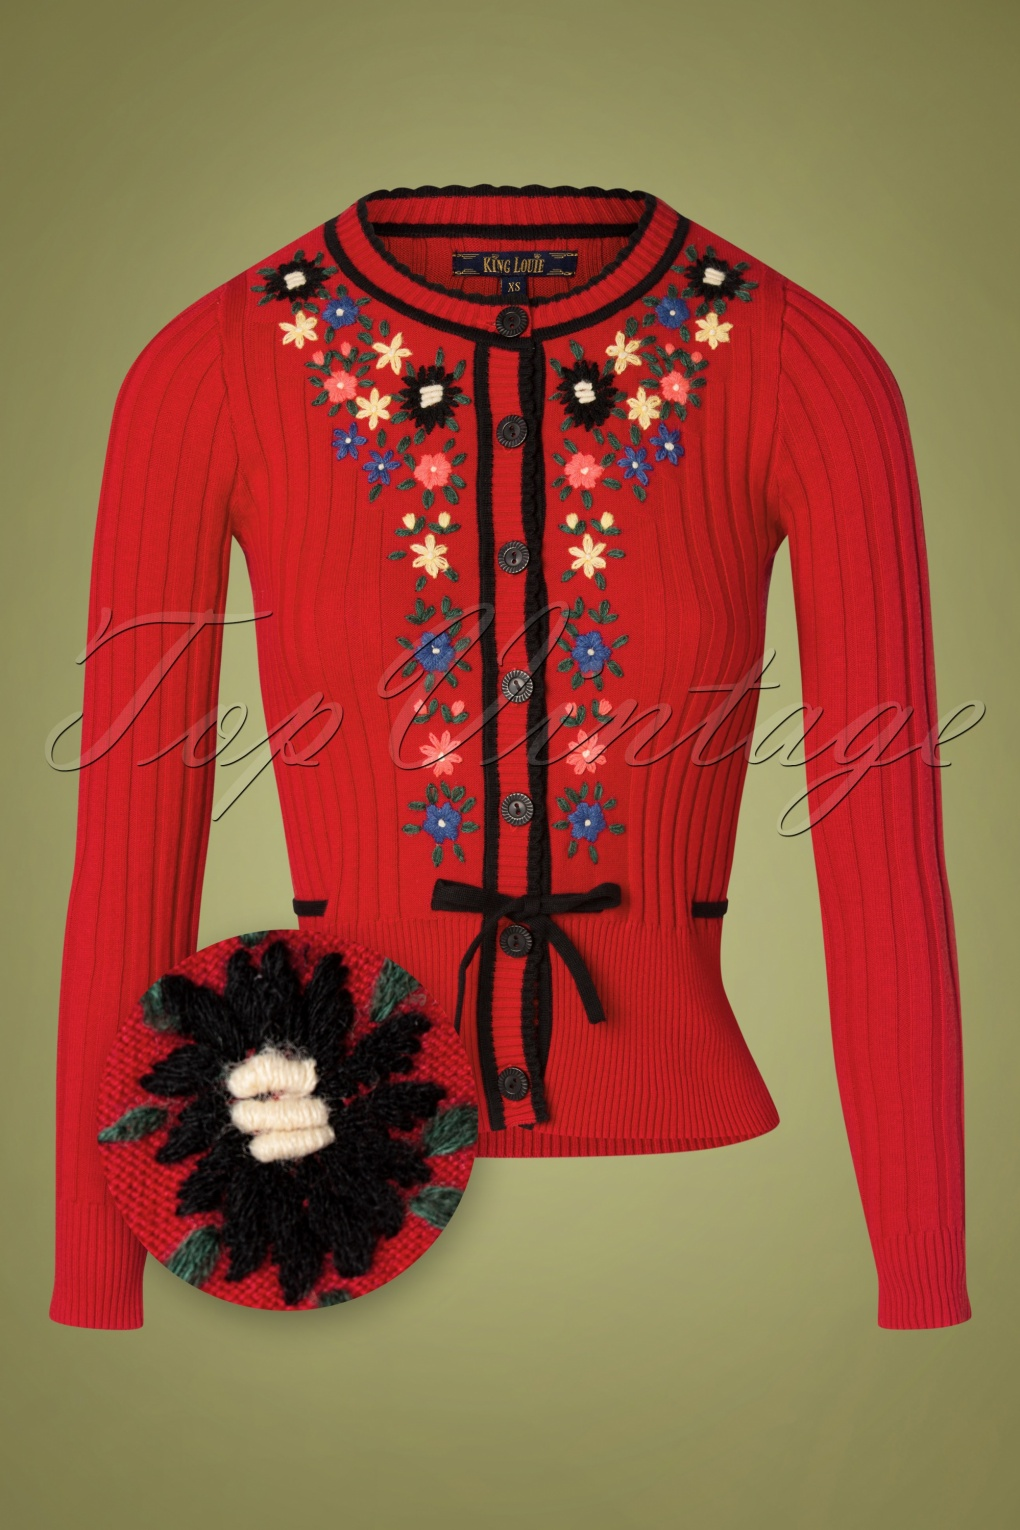 Cottagecore Clothing, Soft Aesthetic 60s Margot Fleur Cardi in Chili Red £90.88 AT vintagedancer.com